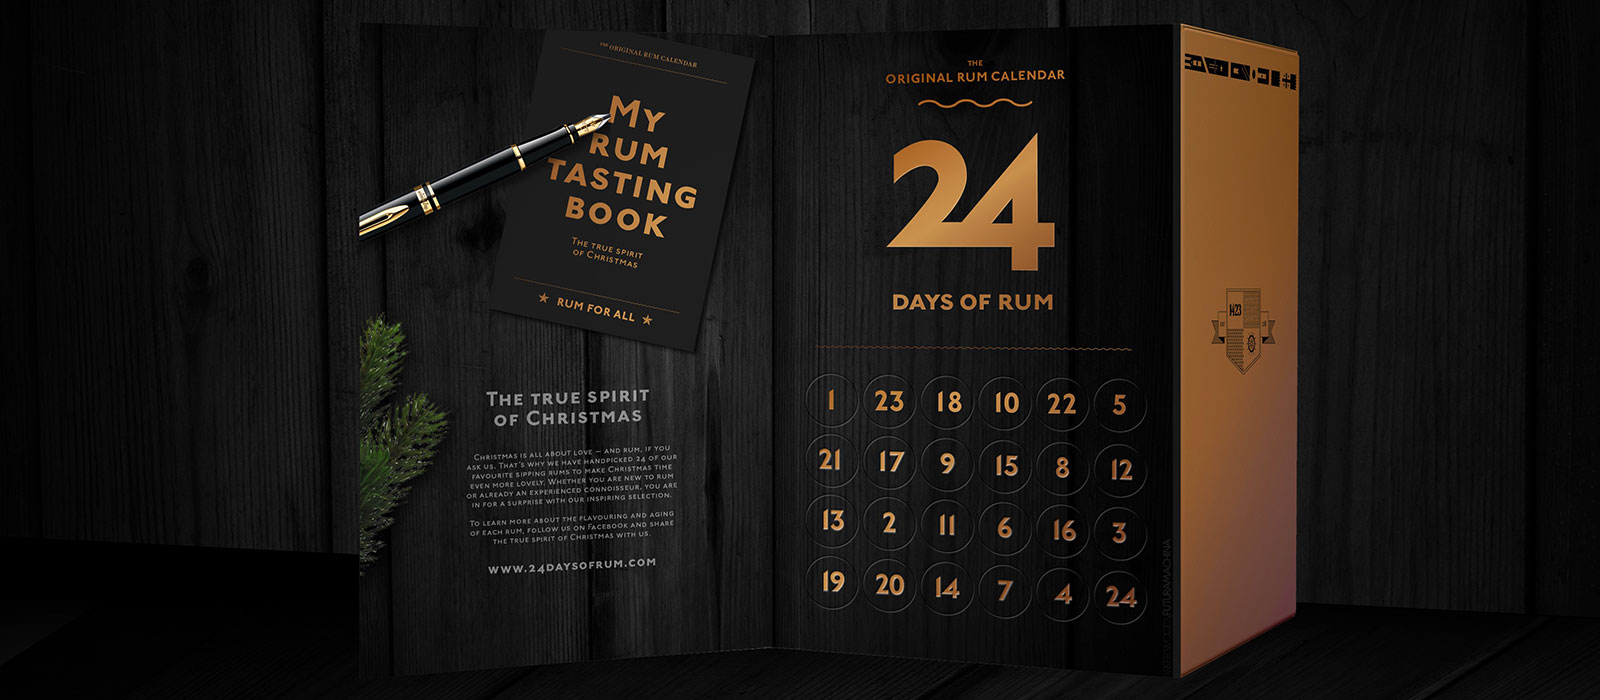 24 Days of Rum 2017 –  The Original Rum Calendar